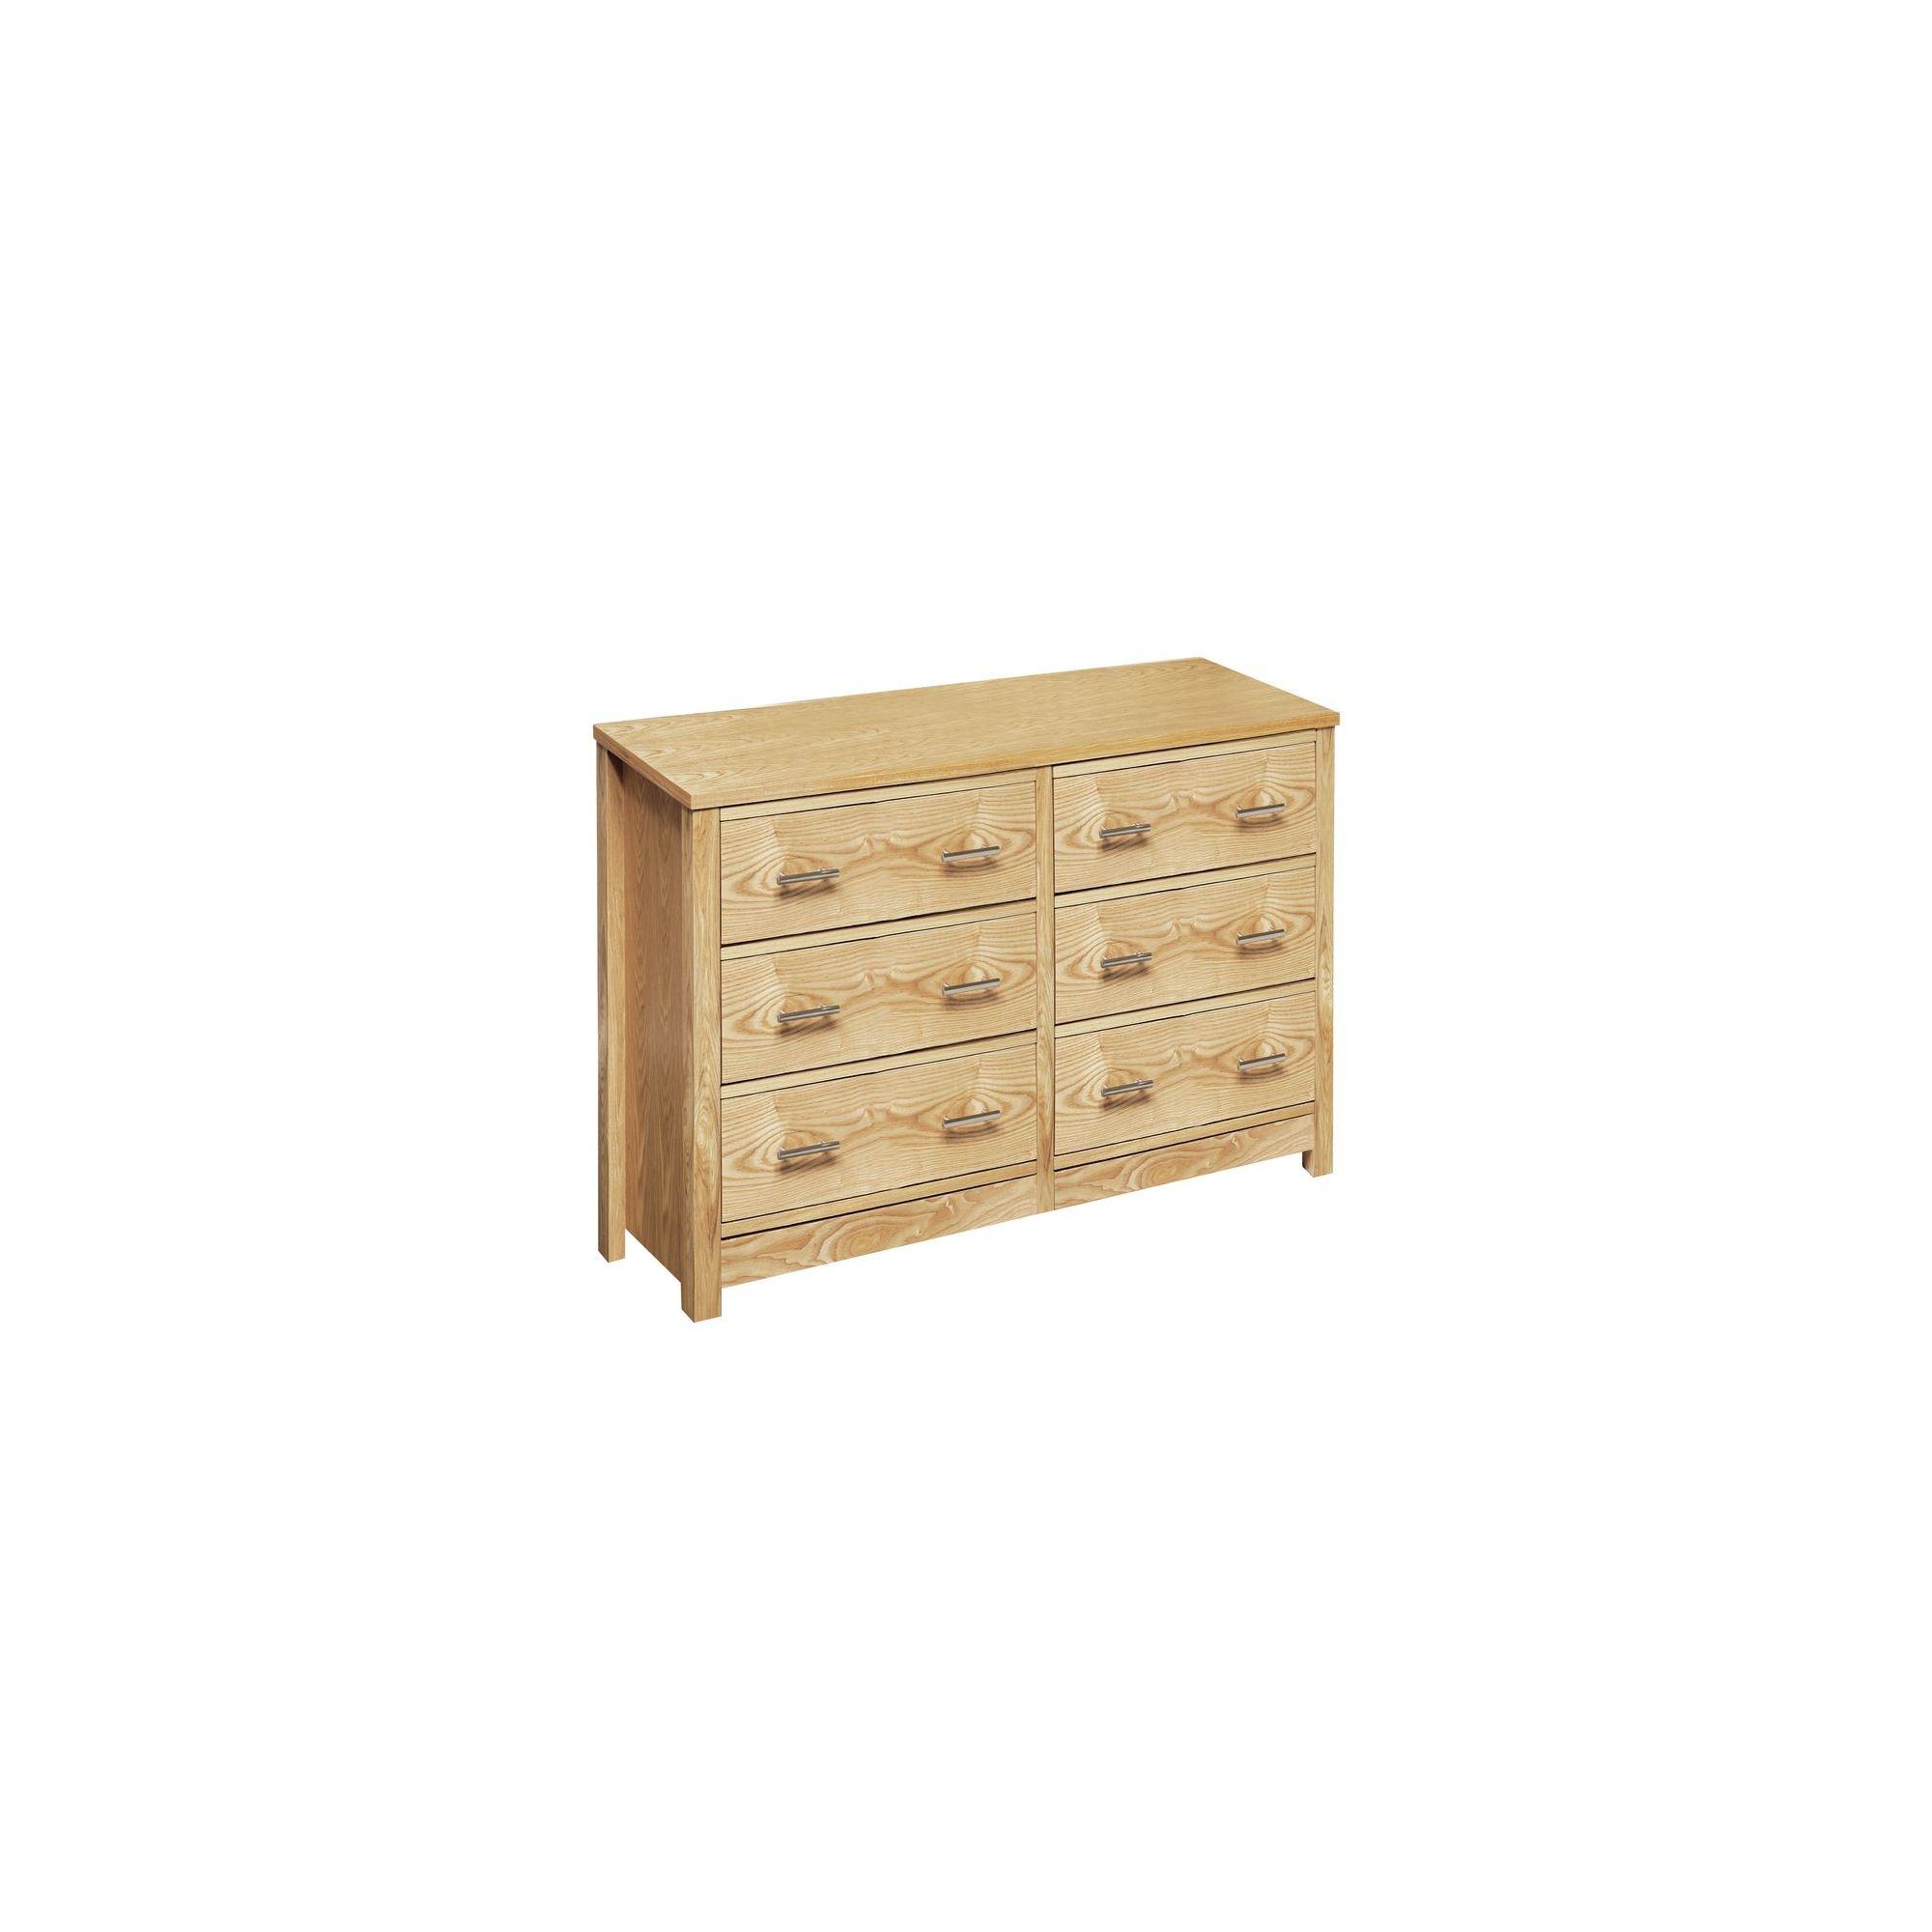 Premier Housewares Eden Dresser at Tescos Direct